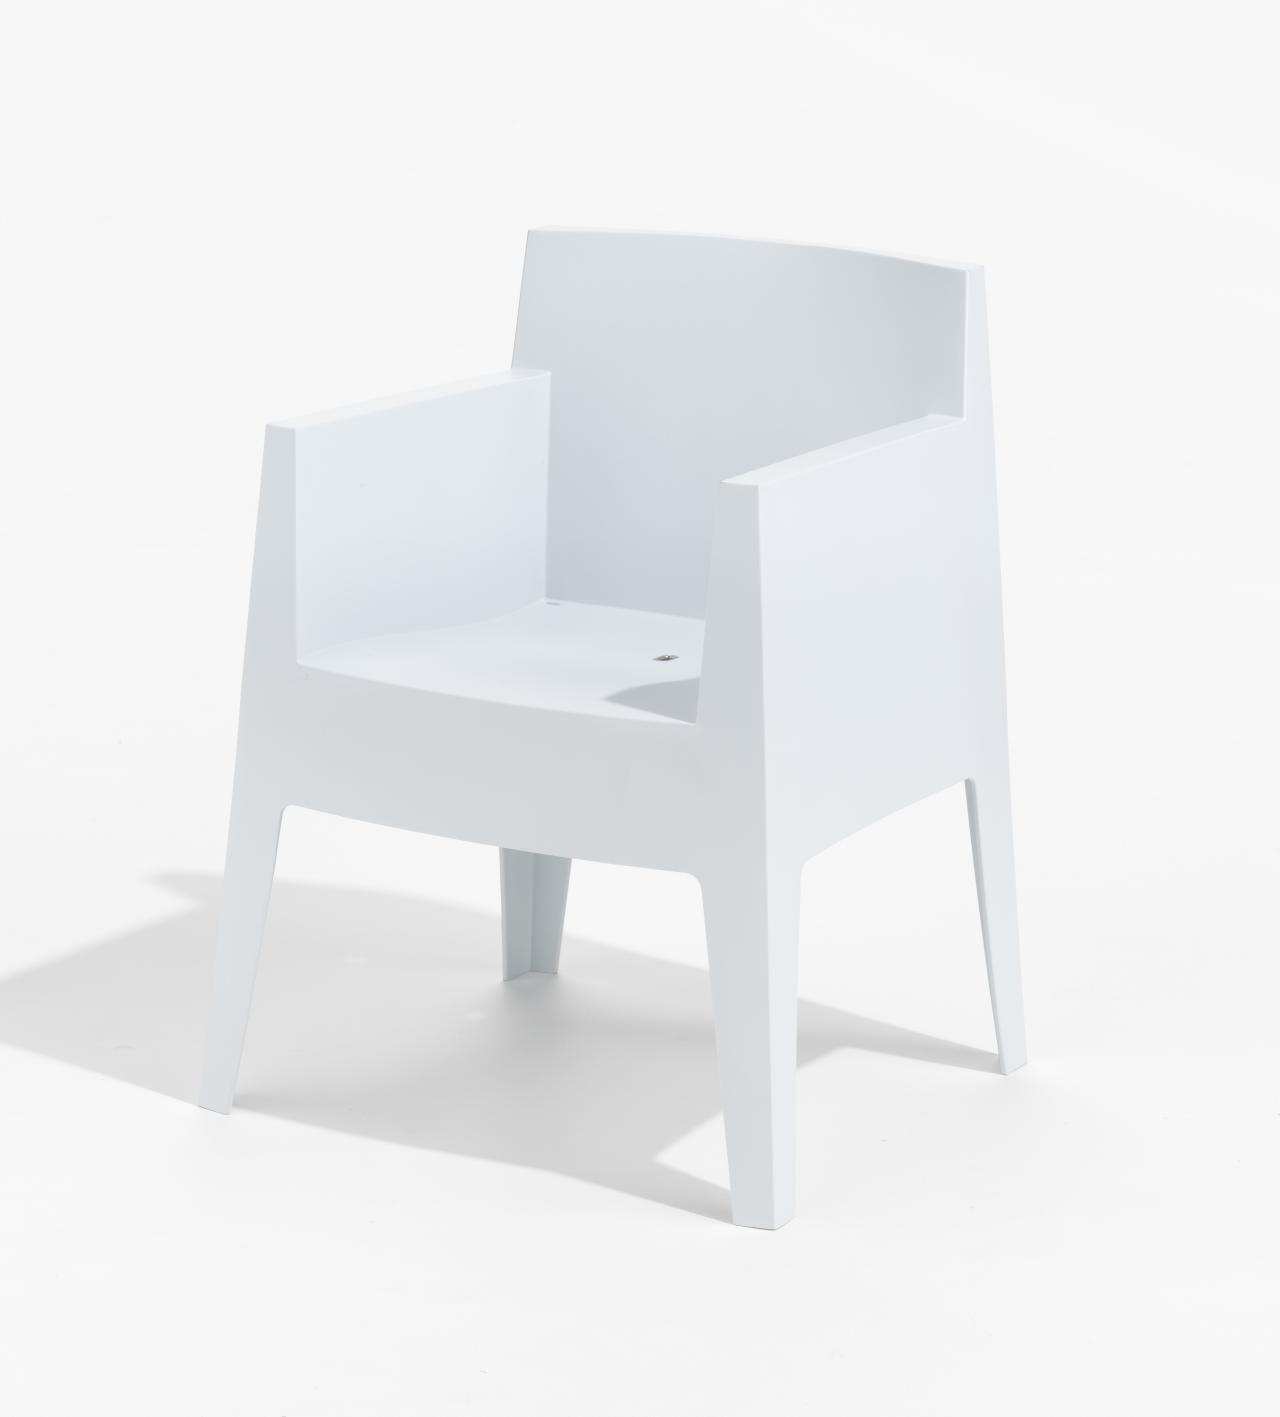 Toy armchair (grey)